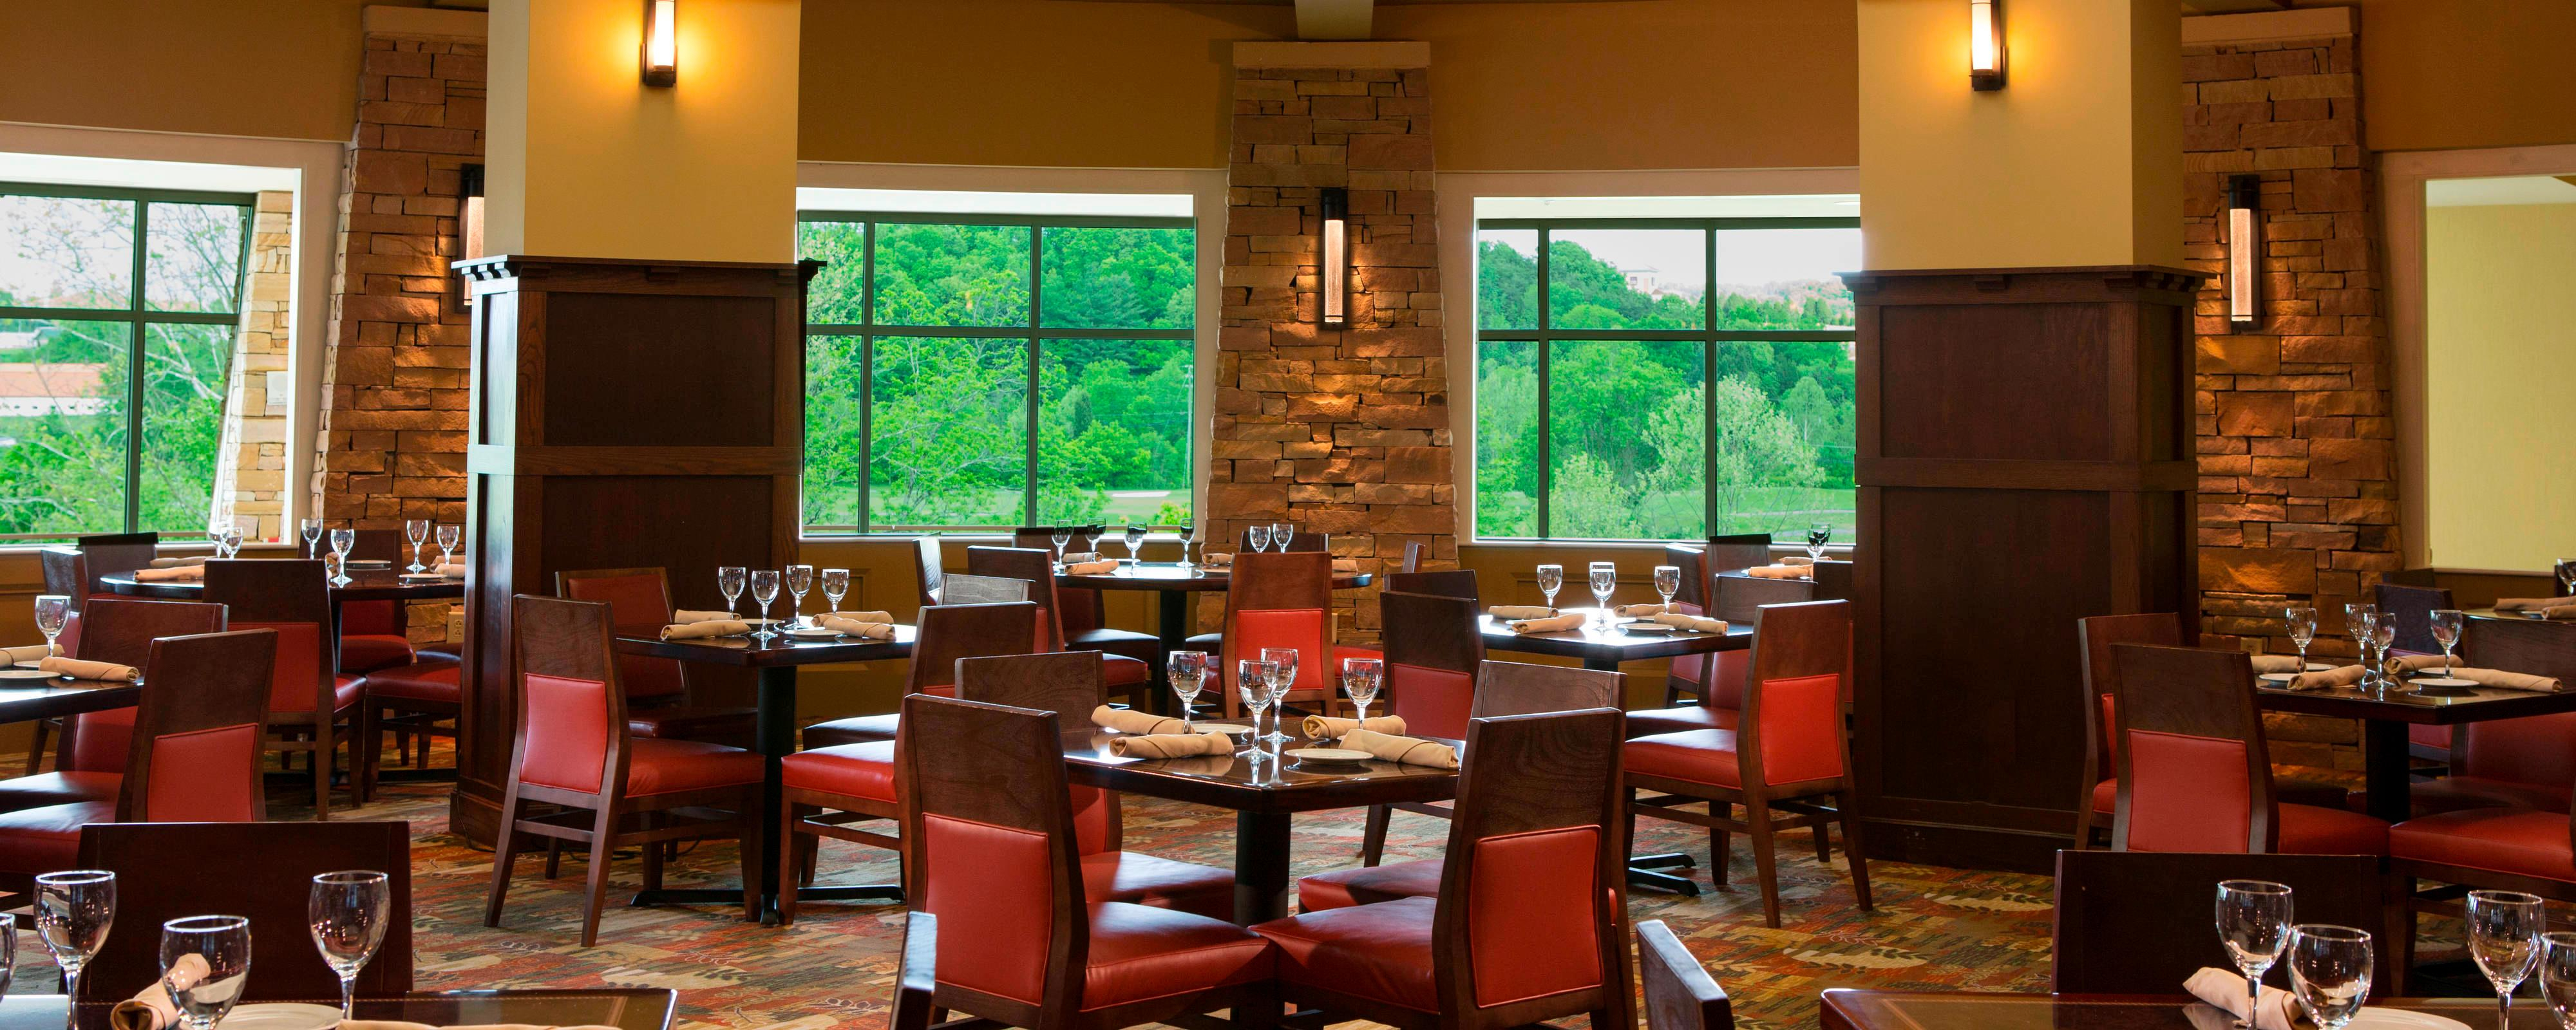 Kingsport Tn Restaurant Dining | Meadowview Conference Resort For Meadowview Convention Center Events 2021